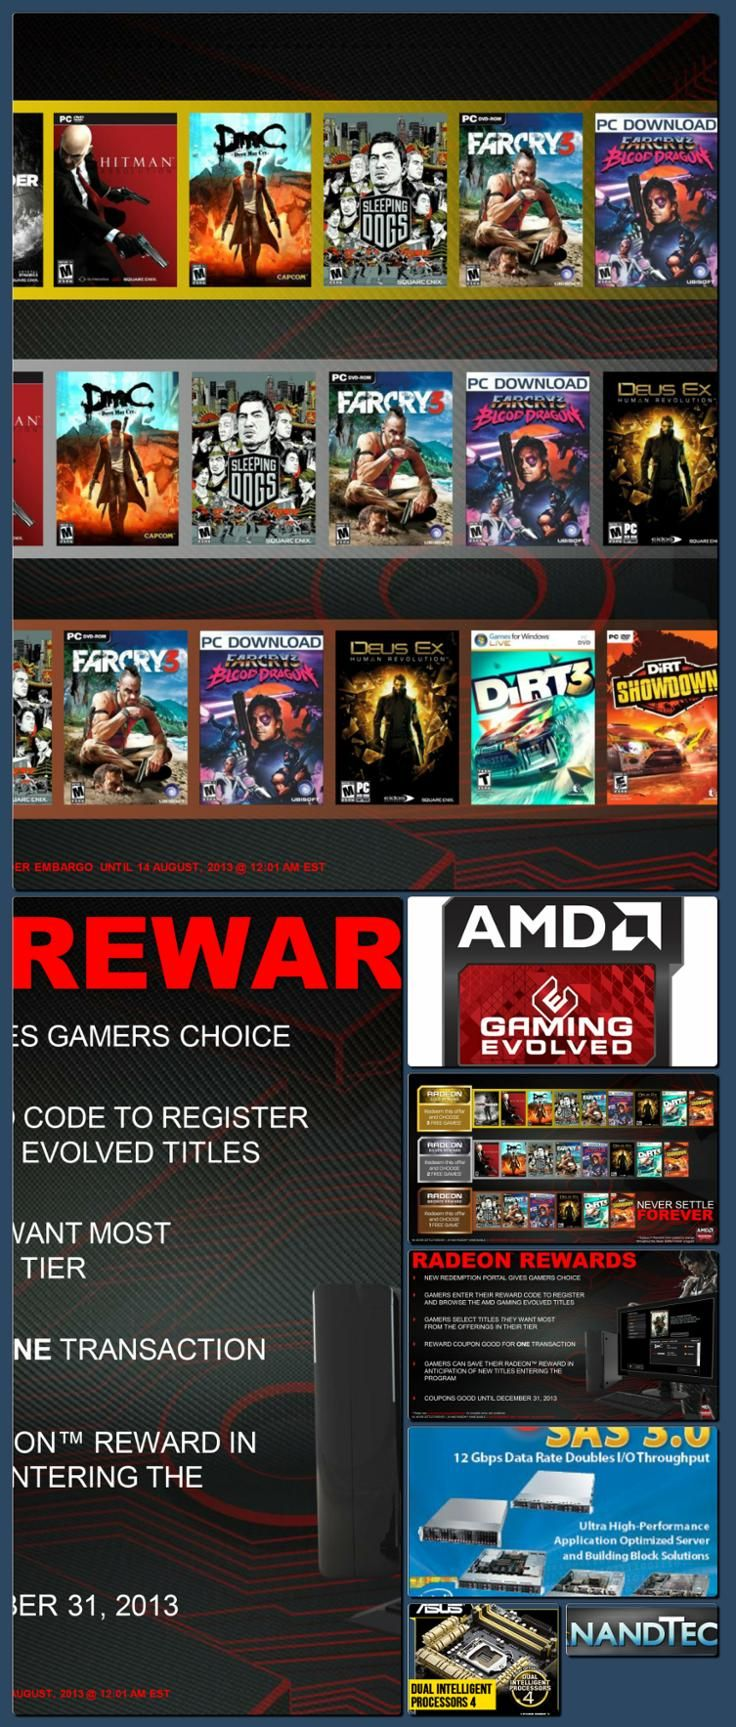 AnandTech | AMD Announces Never Settle Forever Bundle, Introduces Selectable Rewards [Collage made with one click using http://pagecollage.com] #pagecollage